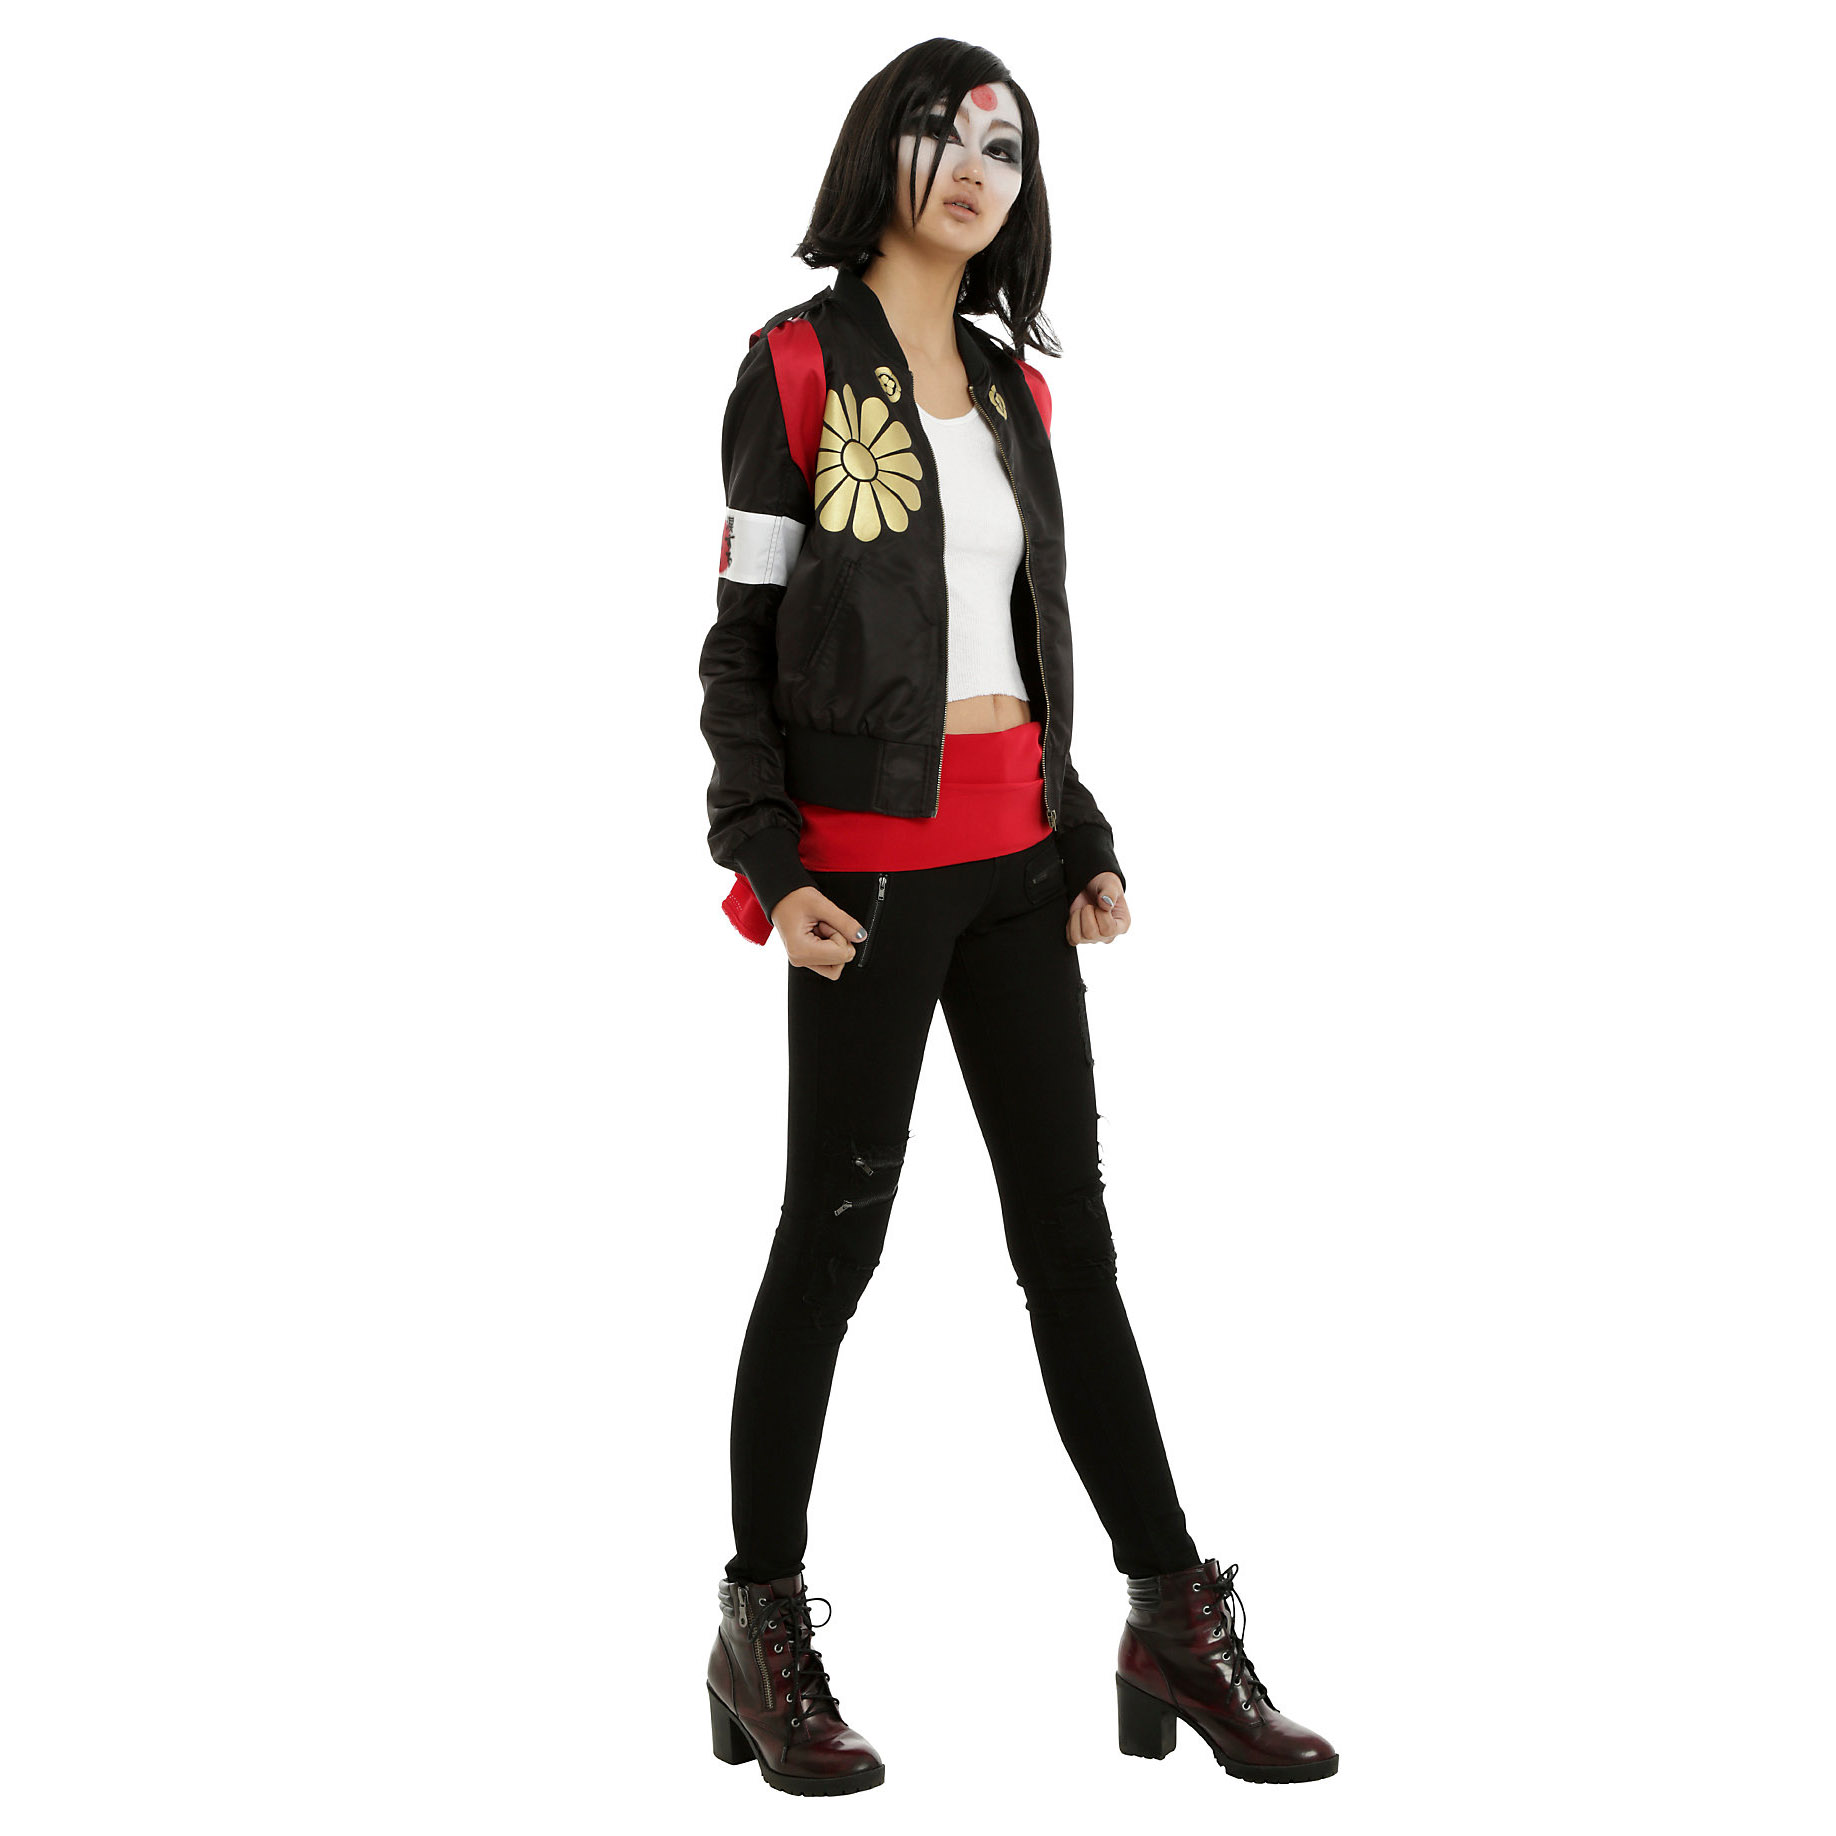 The Suicide Squad Katana Girls Jacket will be available July 22, 2016 ...